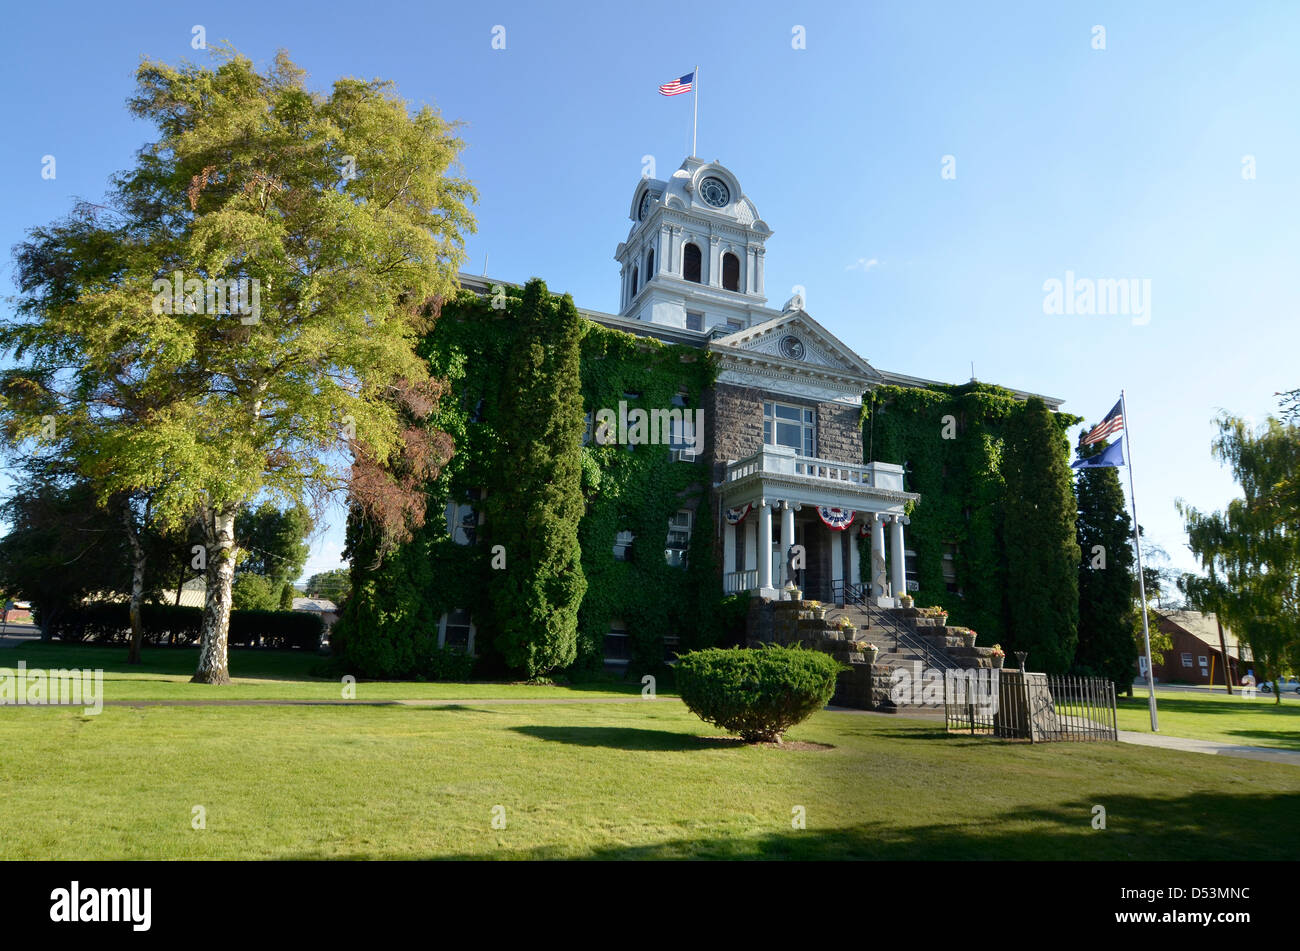 Crook County Courthouse in Prineville, Oregon. - Stock Image